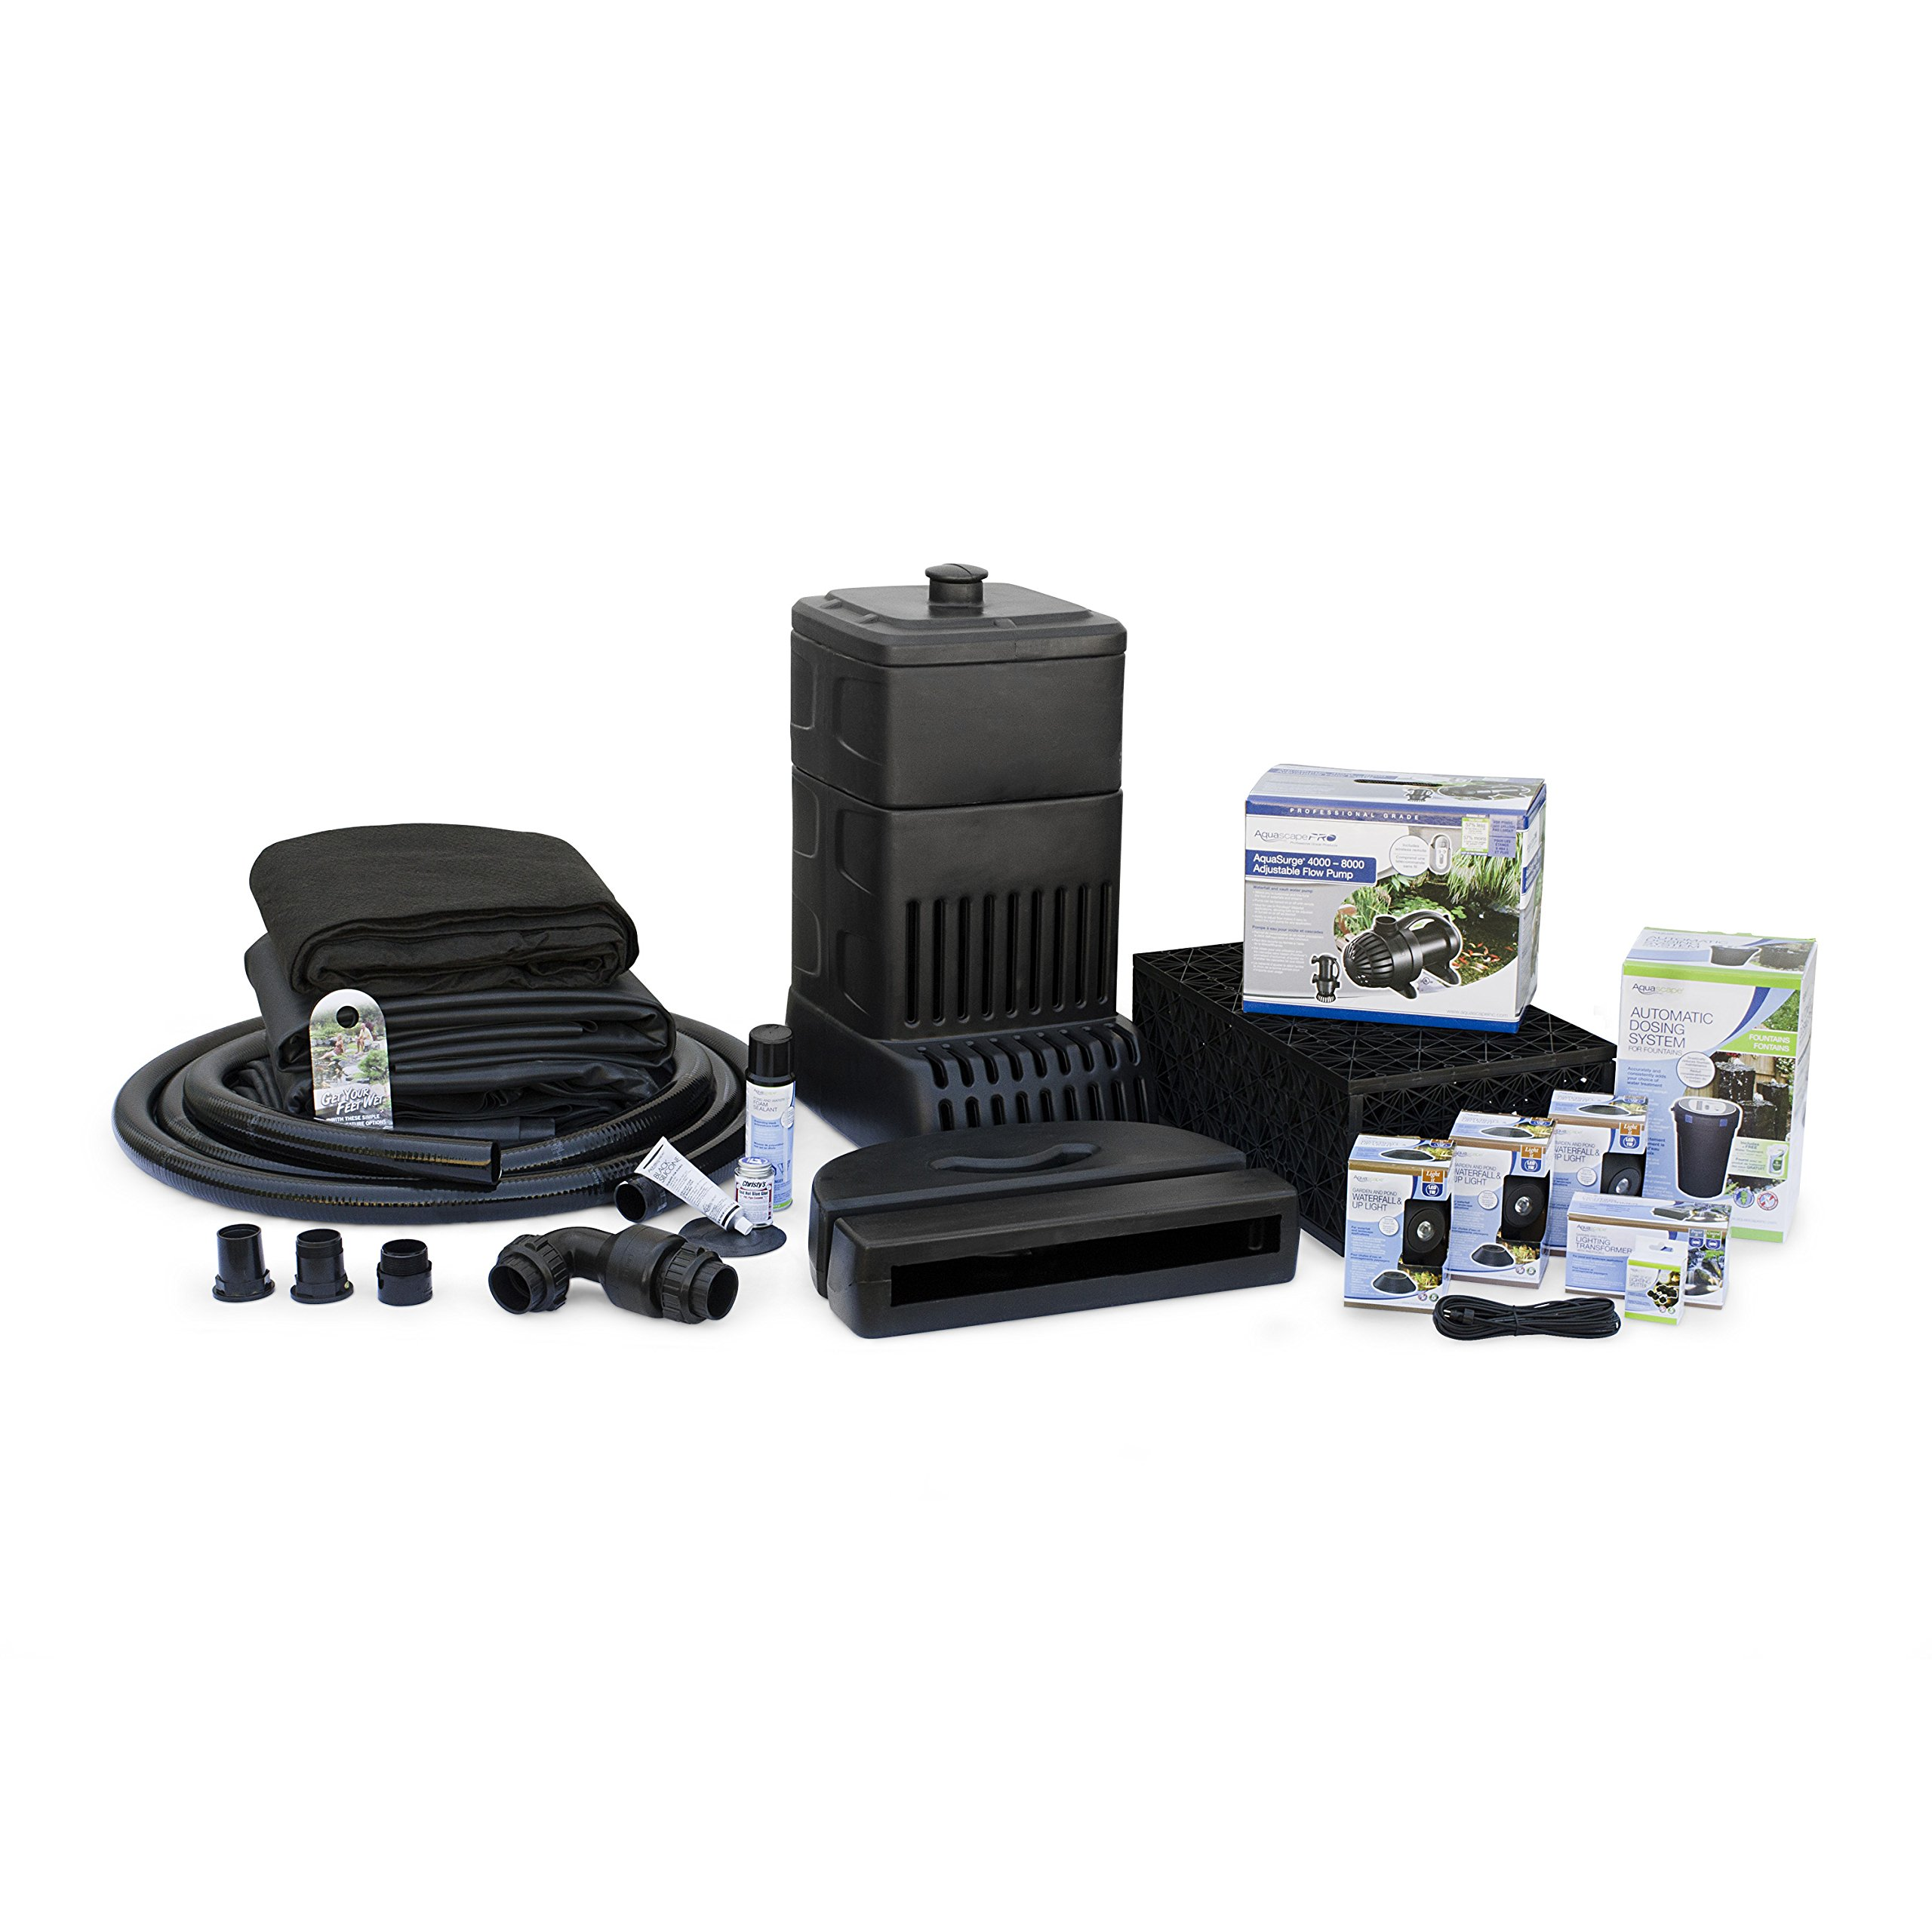 Aquascape Complete Waterfall Kit with 26 Feet Stream | Large | AquaSurgePRO 4000-8000 Pump by Aquascape